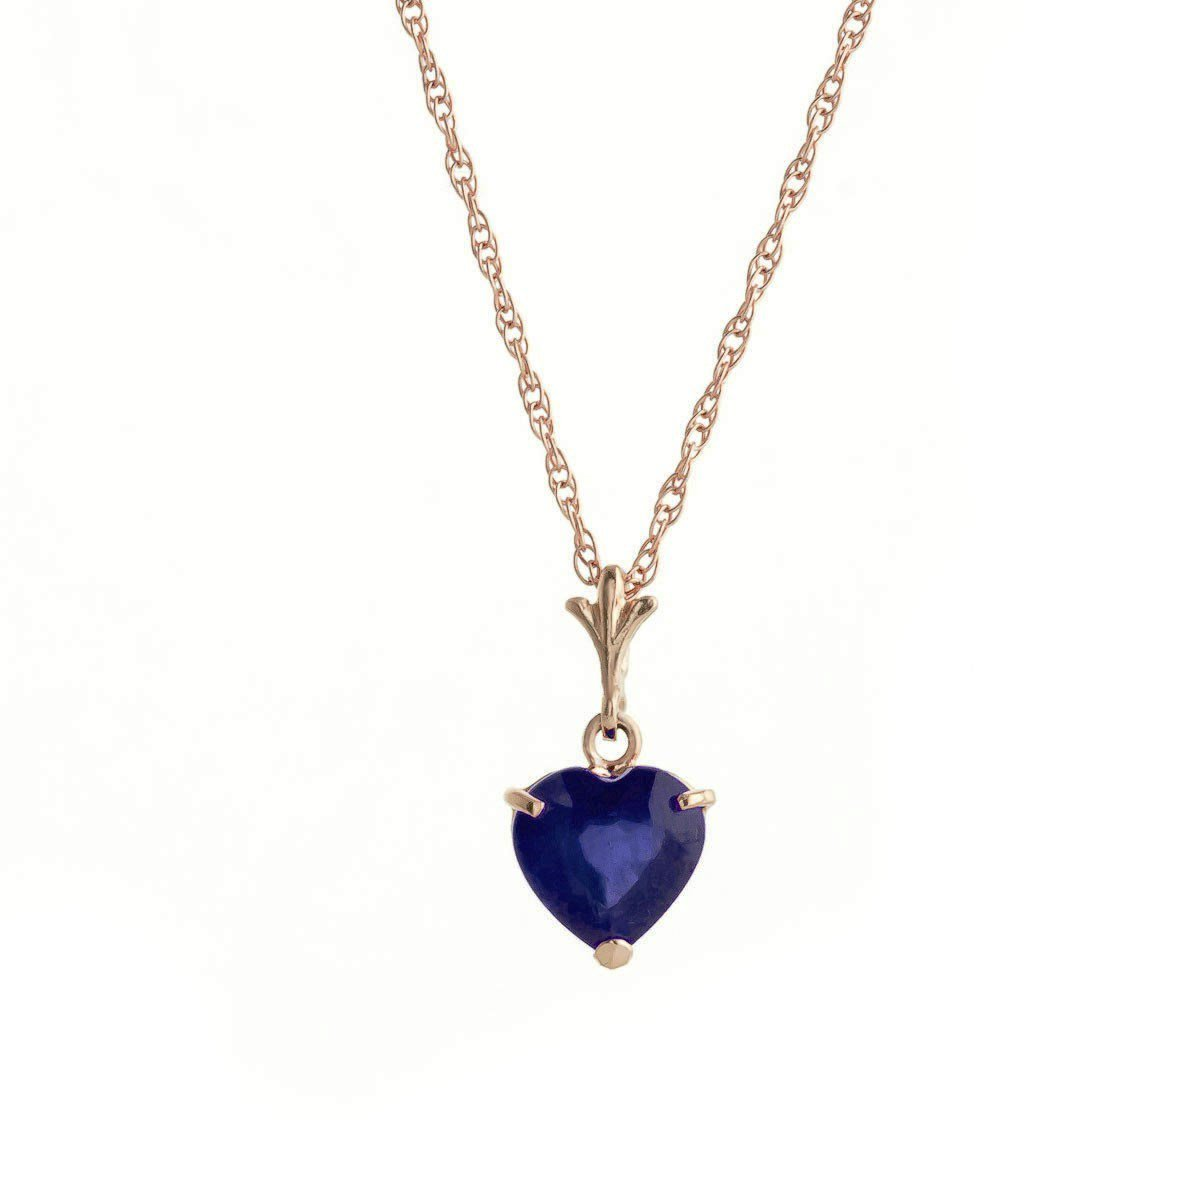 Sweetest Day Natural Sapphire Heart Pendant Necklace 14K Solid Rose Gold 4318-R